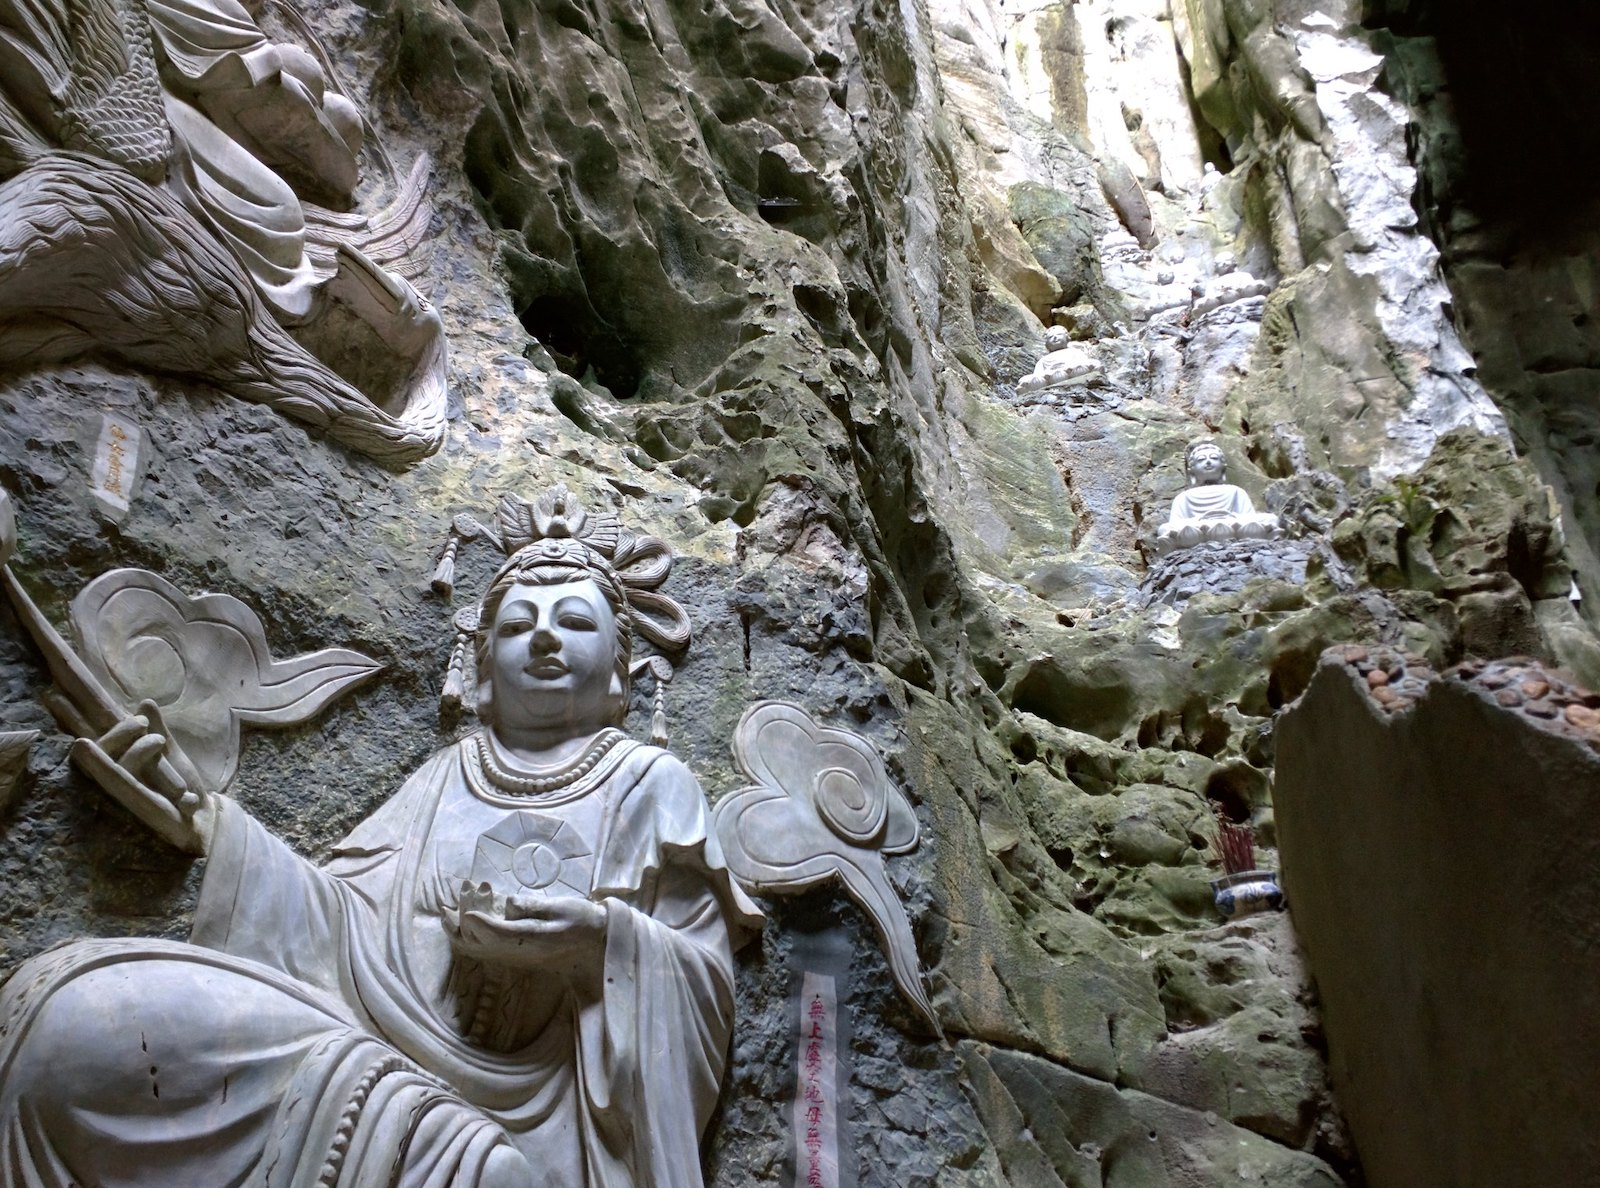 Image of carvings in the Marble Mountains in Da Nang, Vietnam